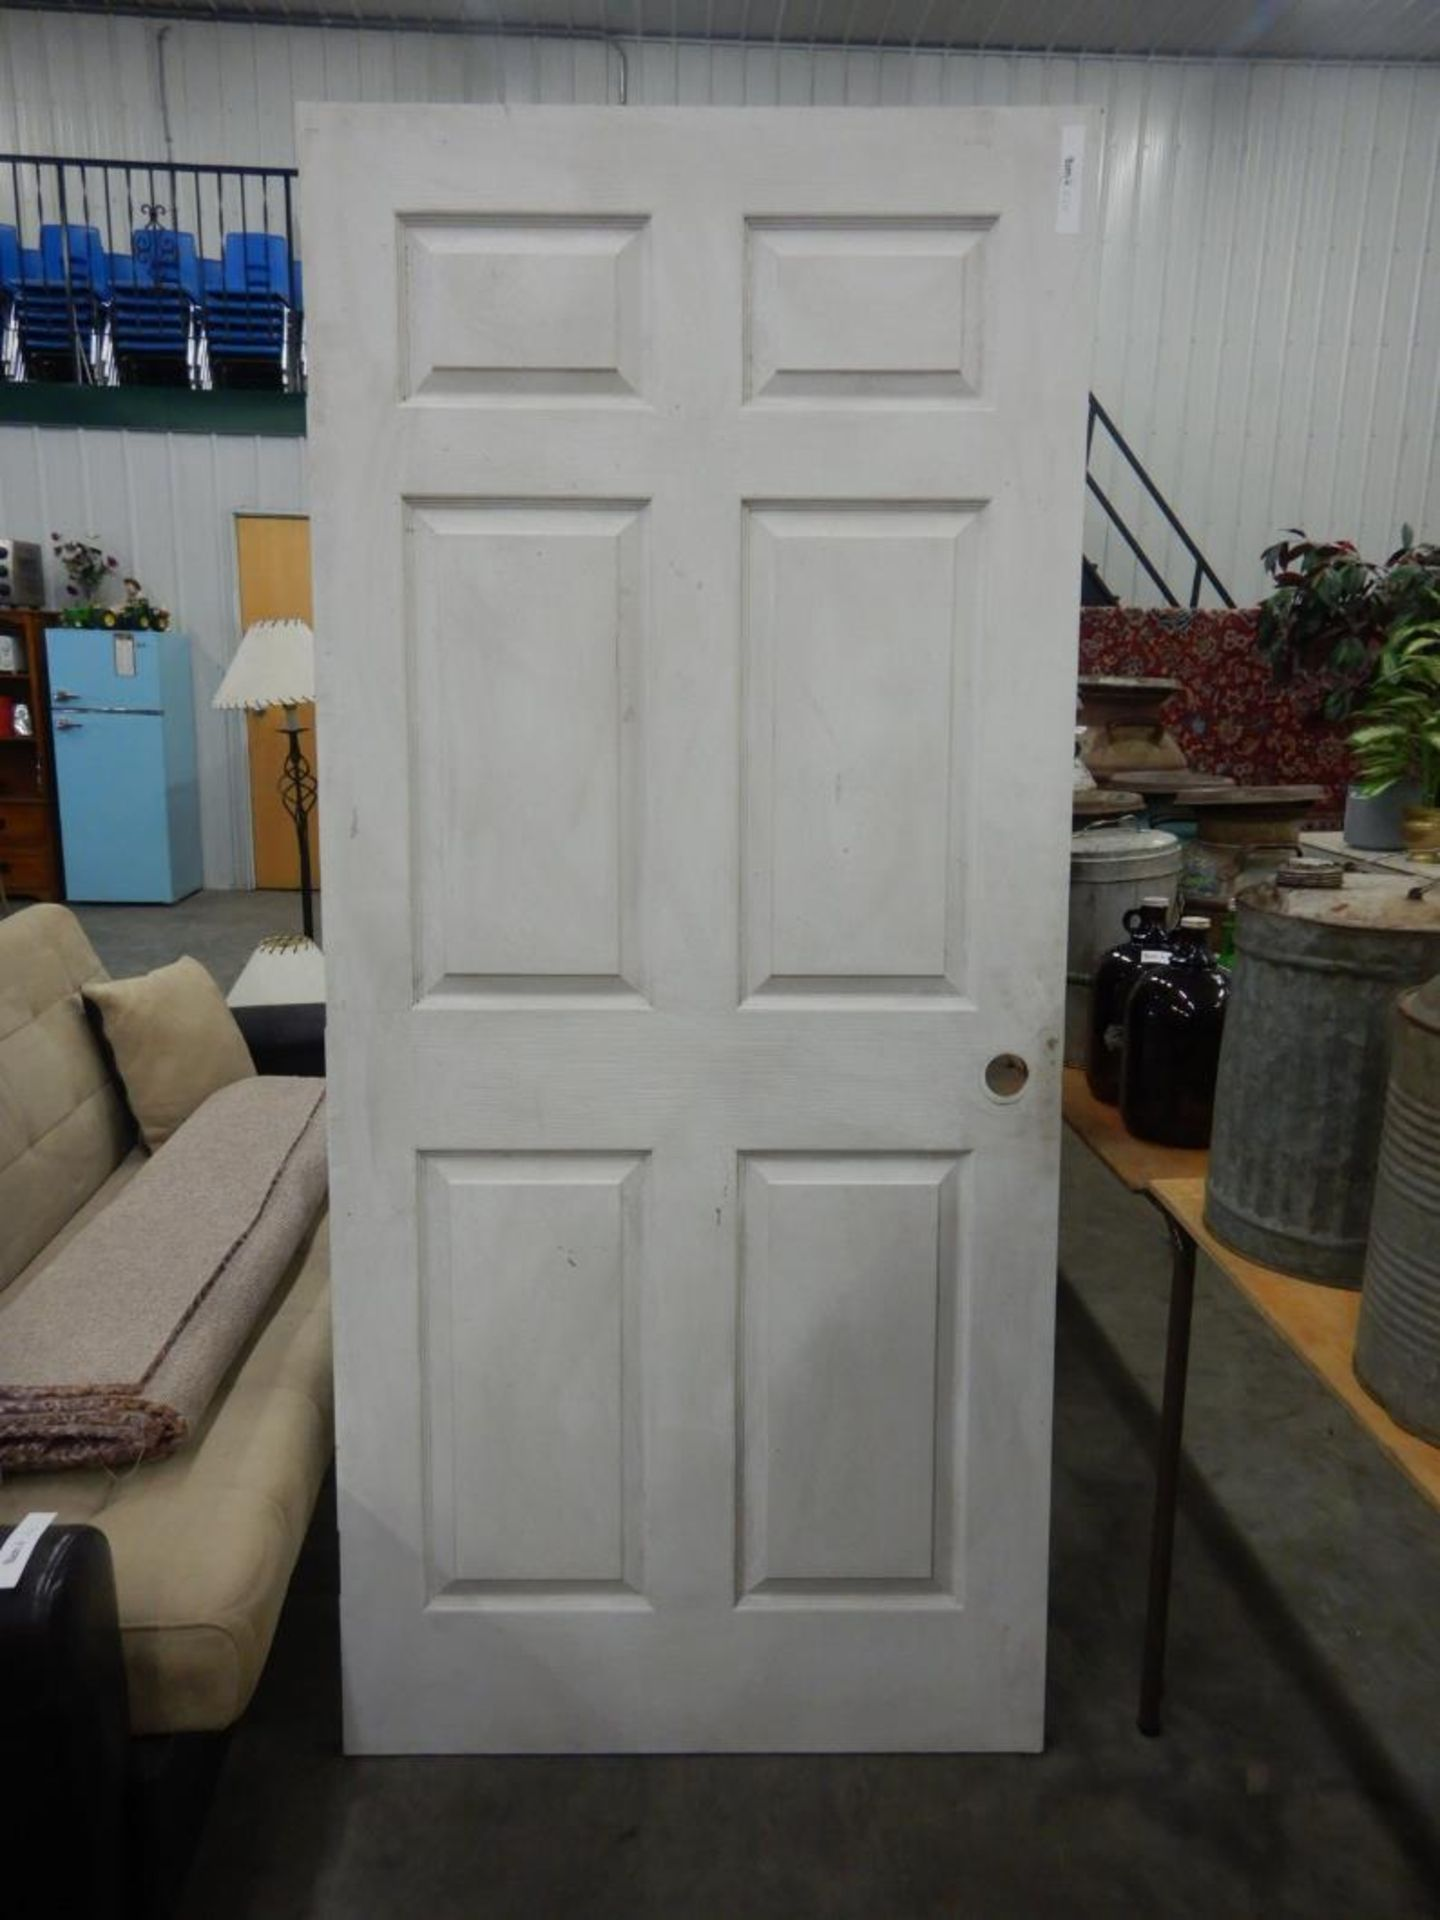 """PREVIOUSLY INSTALLED 36"""" X 80 INTERIOR DOOR W/ HINGES - Image 2 of 2"""